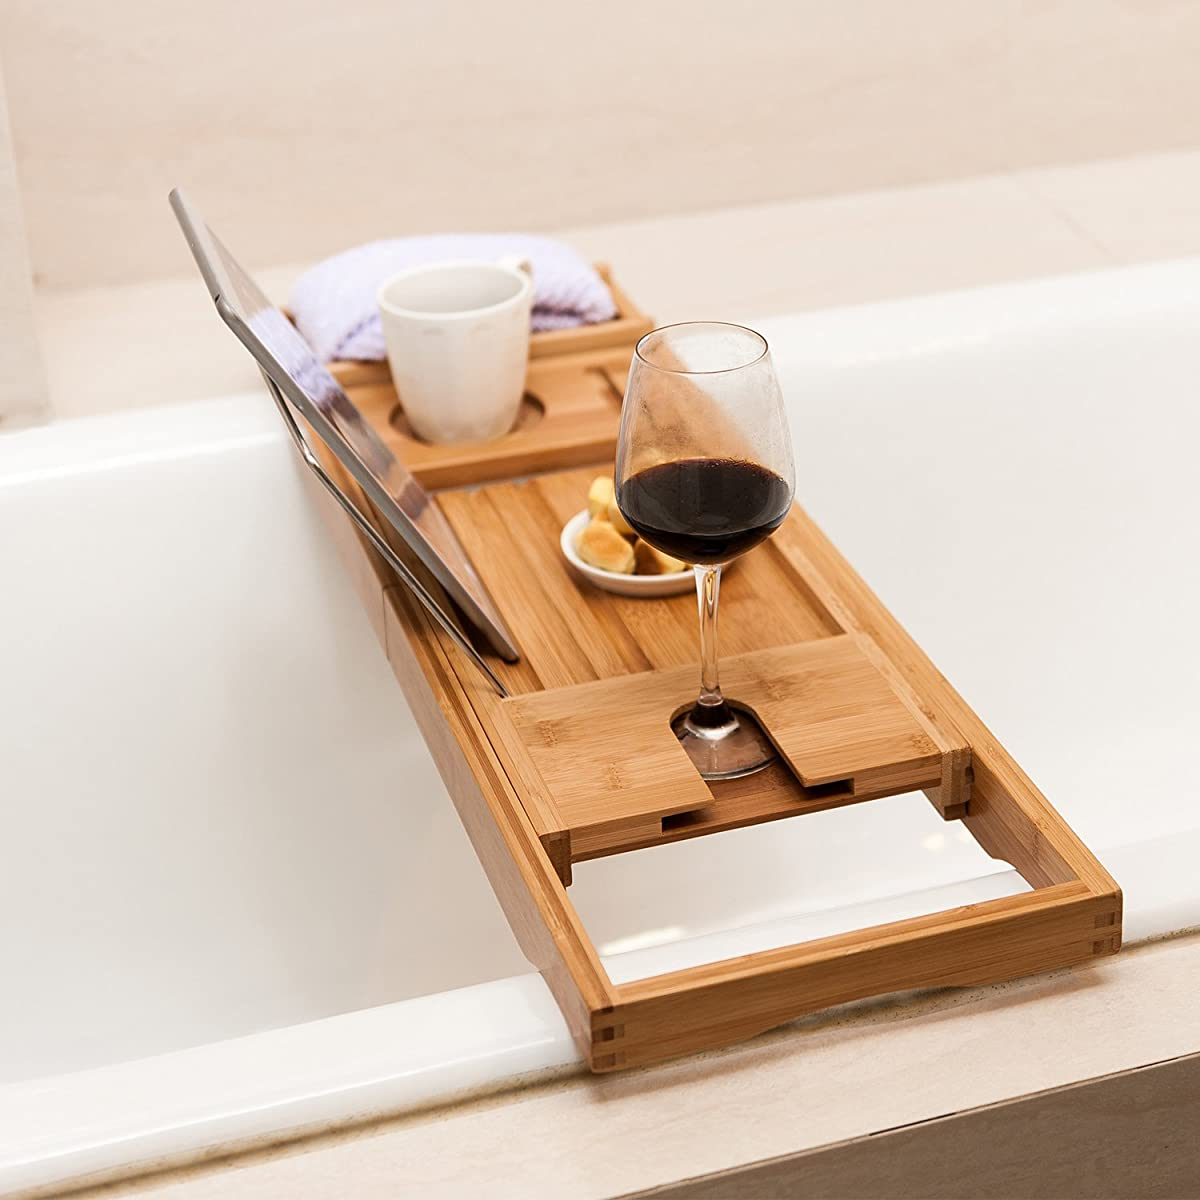 Wooden Drink Holder Valdler Home Wooden Bathtub Tray Caddy With Reading Rack